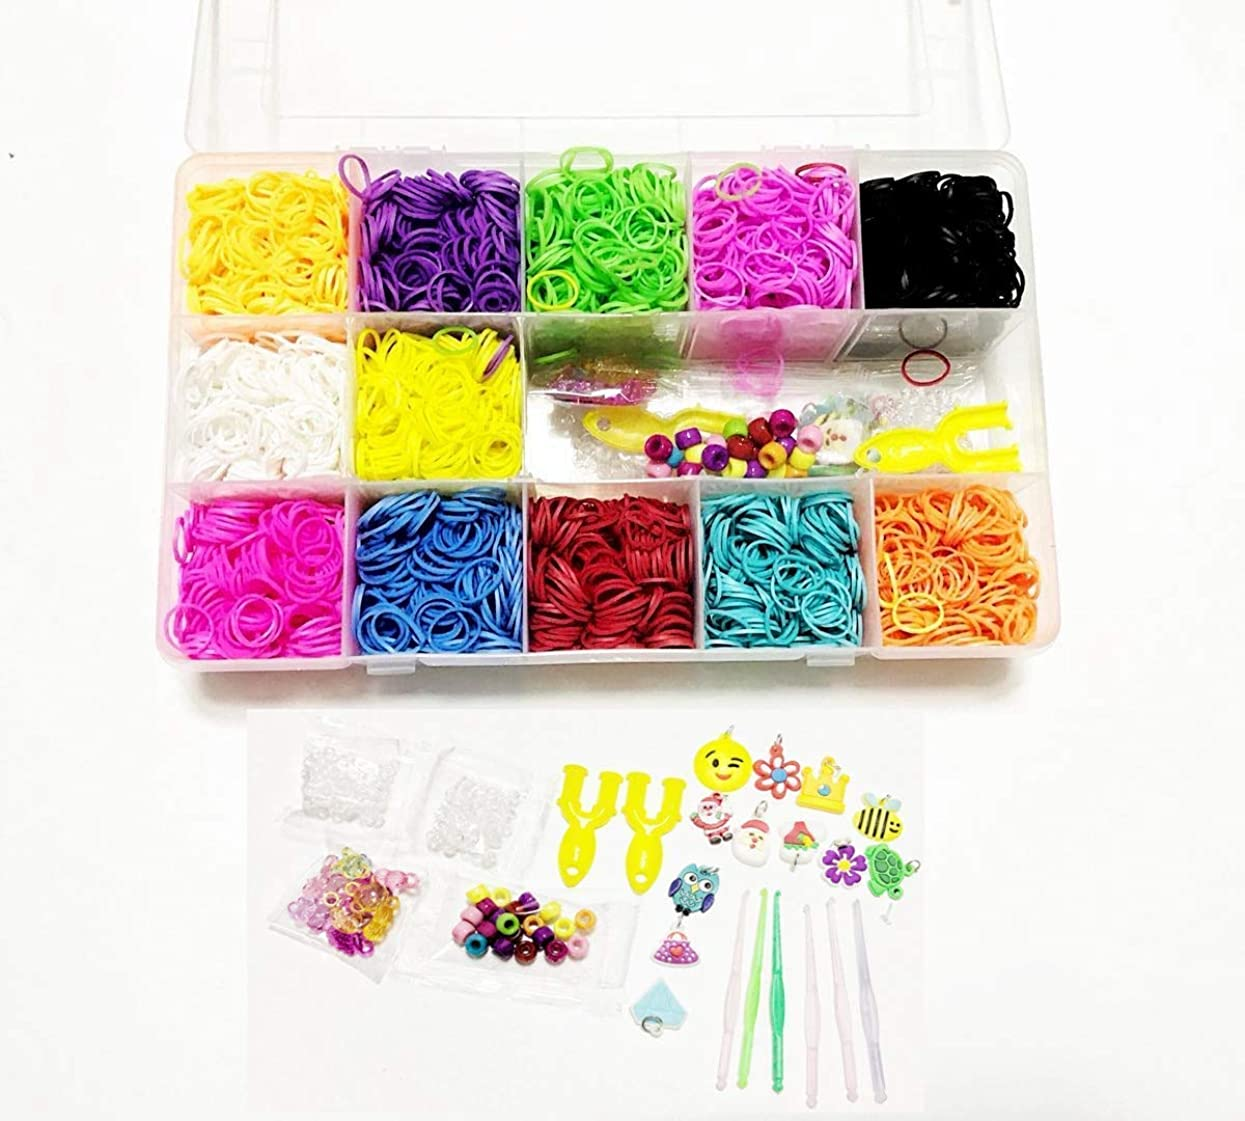 FRANNKY 5,500Pcs Rainbow Rubber Bands Mega Refill Loom with 6 Hooks,100 S-Clips,12 Silicone Charms,45 Beads